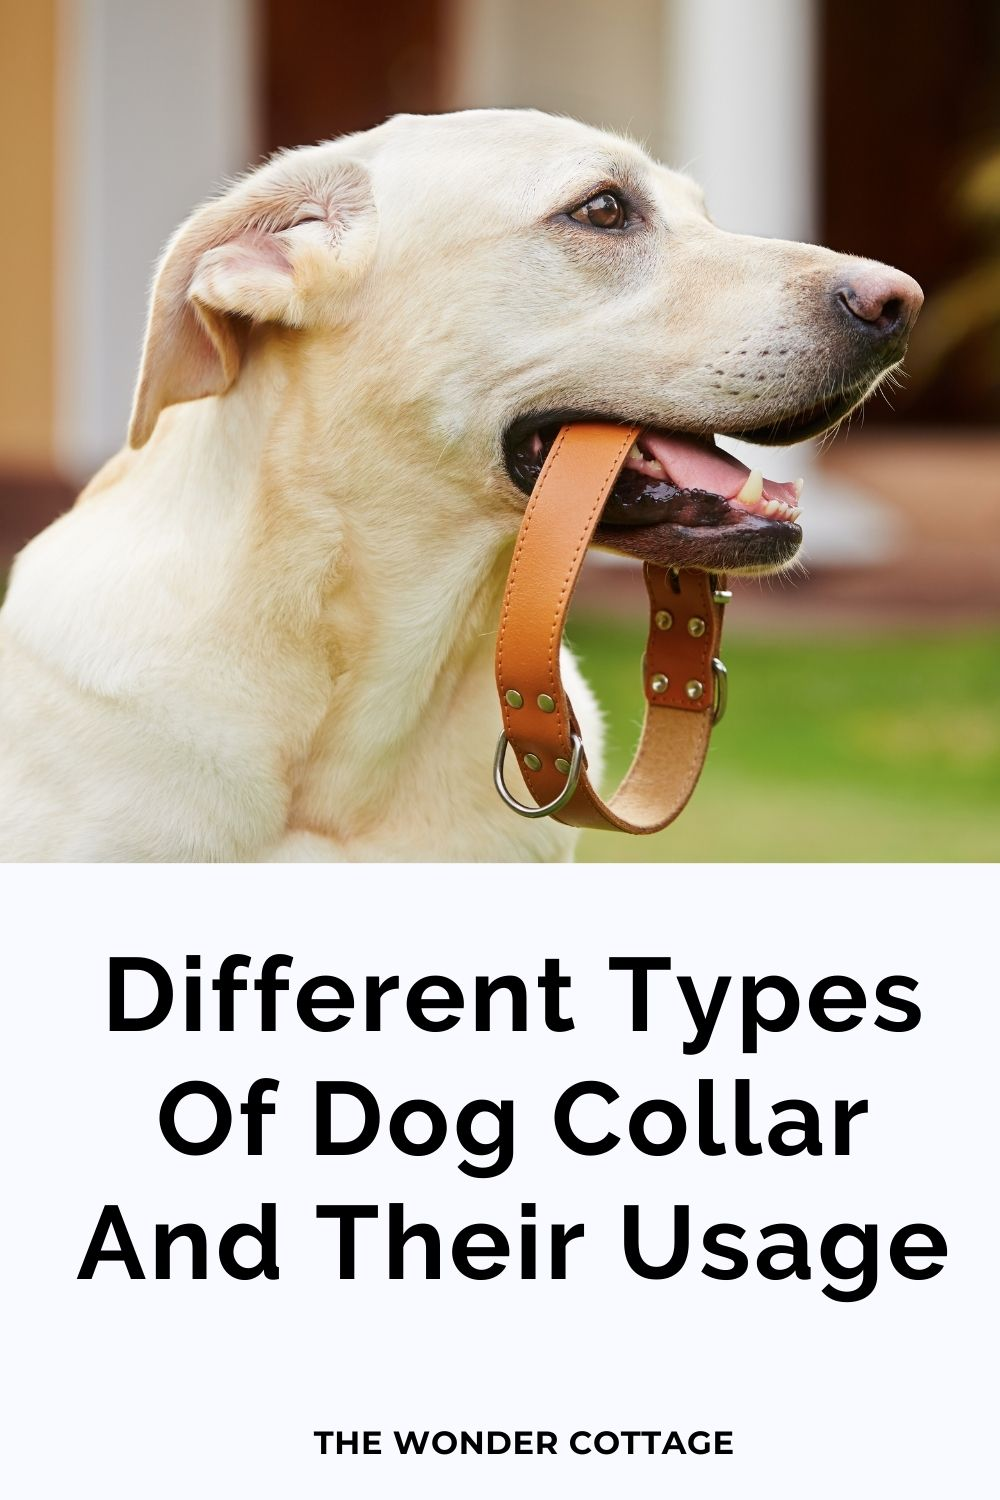 Different Types Of Dog Collar And Their Usage